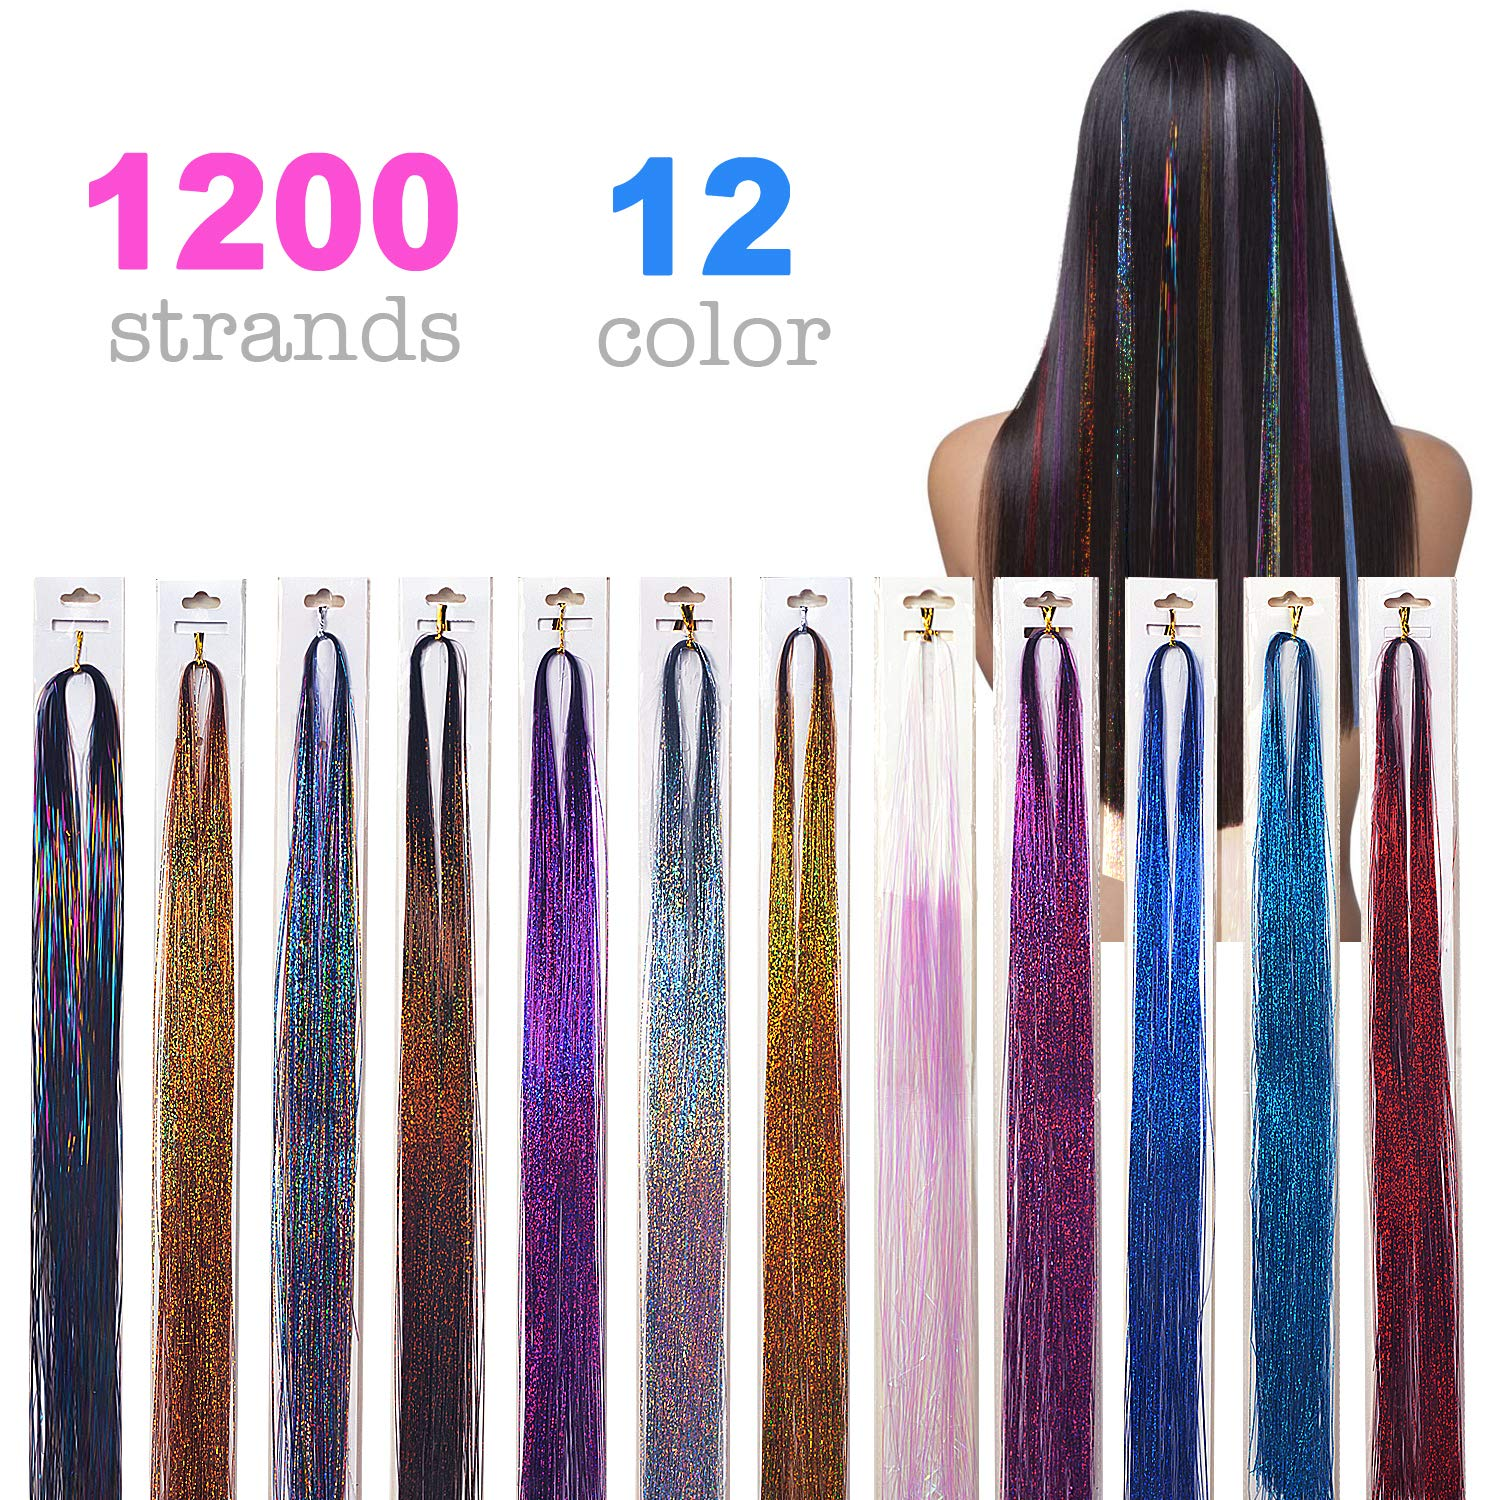 1200 Strands Hair Tinsel 40'' Glitter Hair Extensions Sparkling Tinsel Hair Extensions for Party Highlight Hair Extensions, 12 Colors